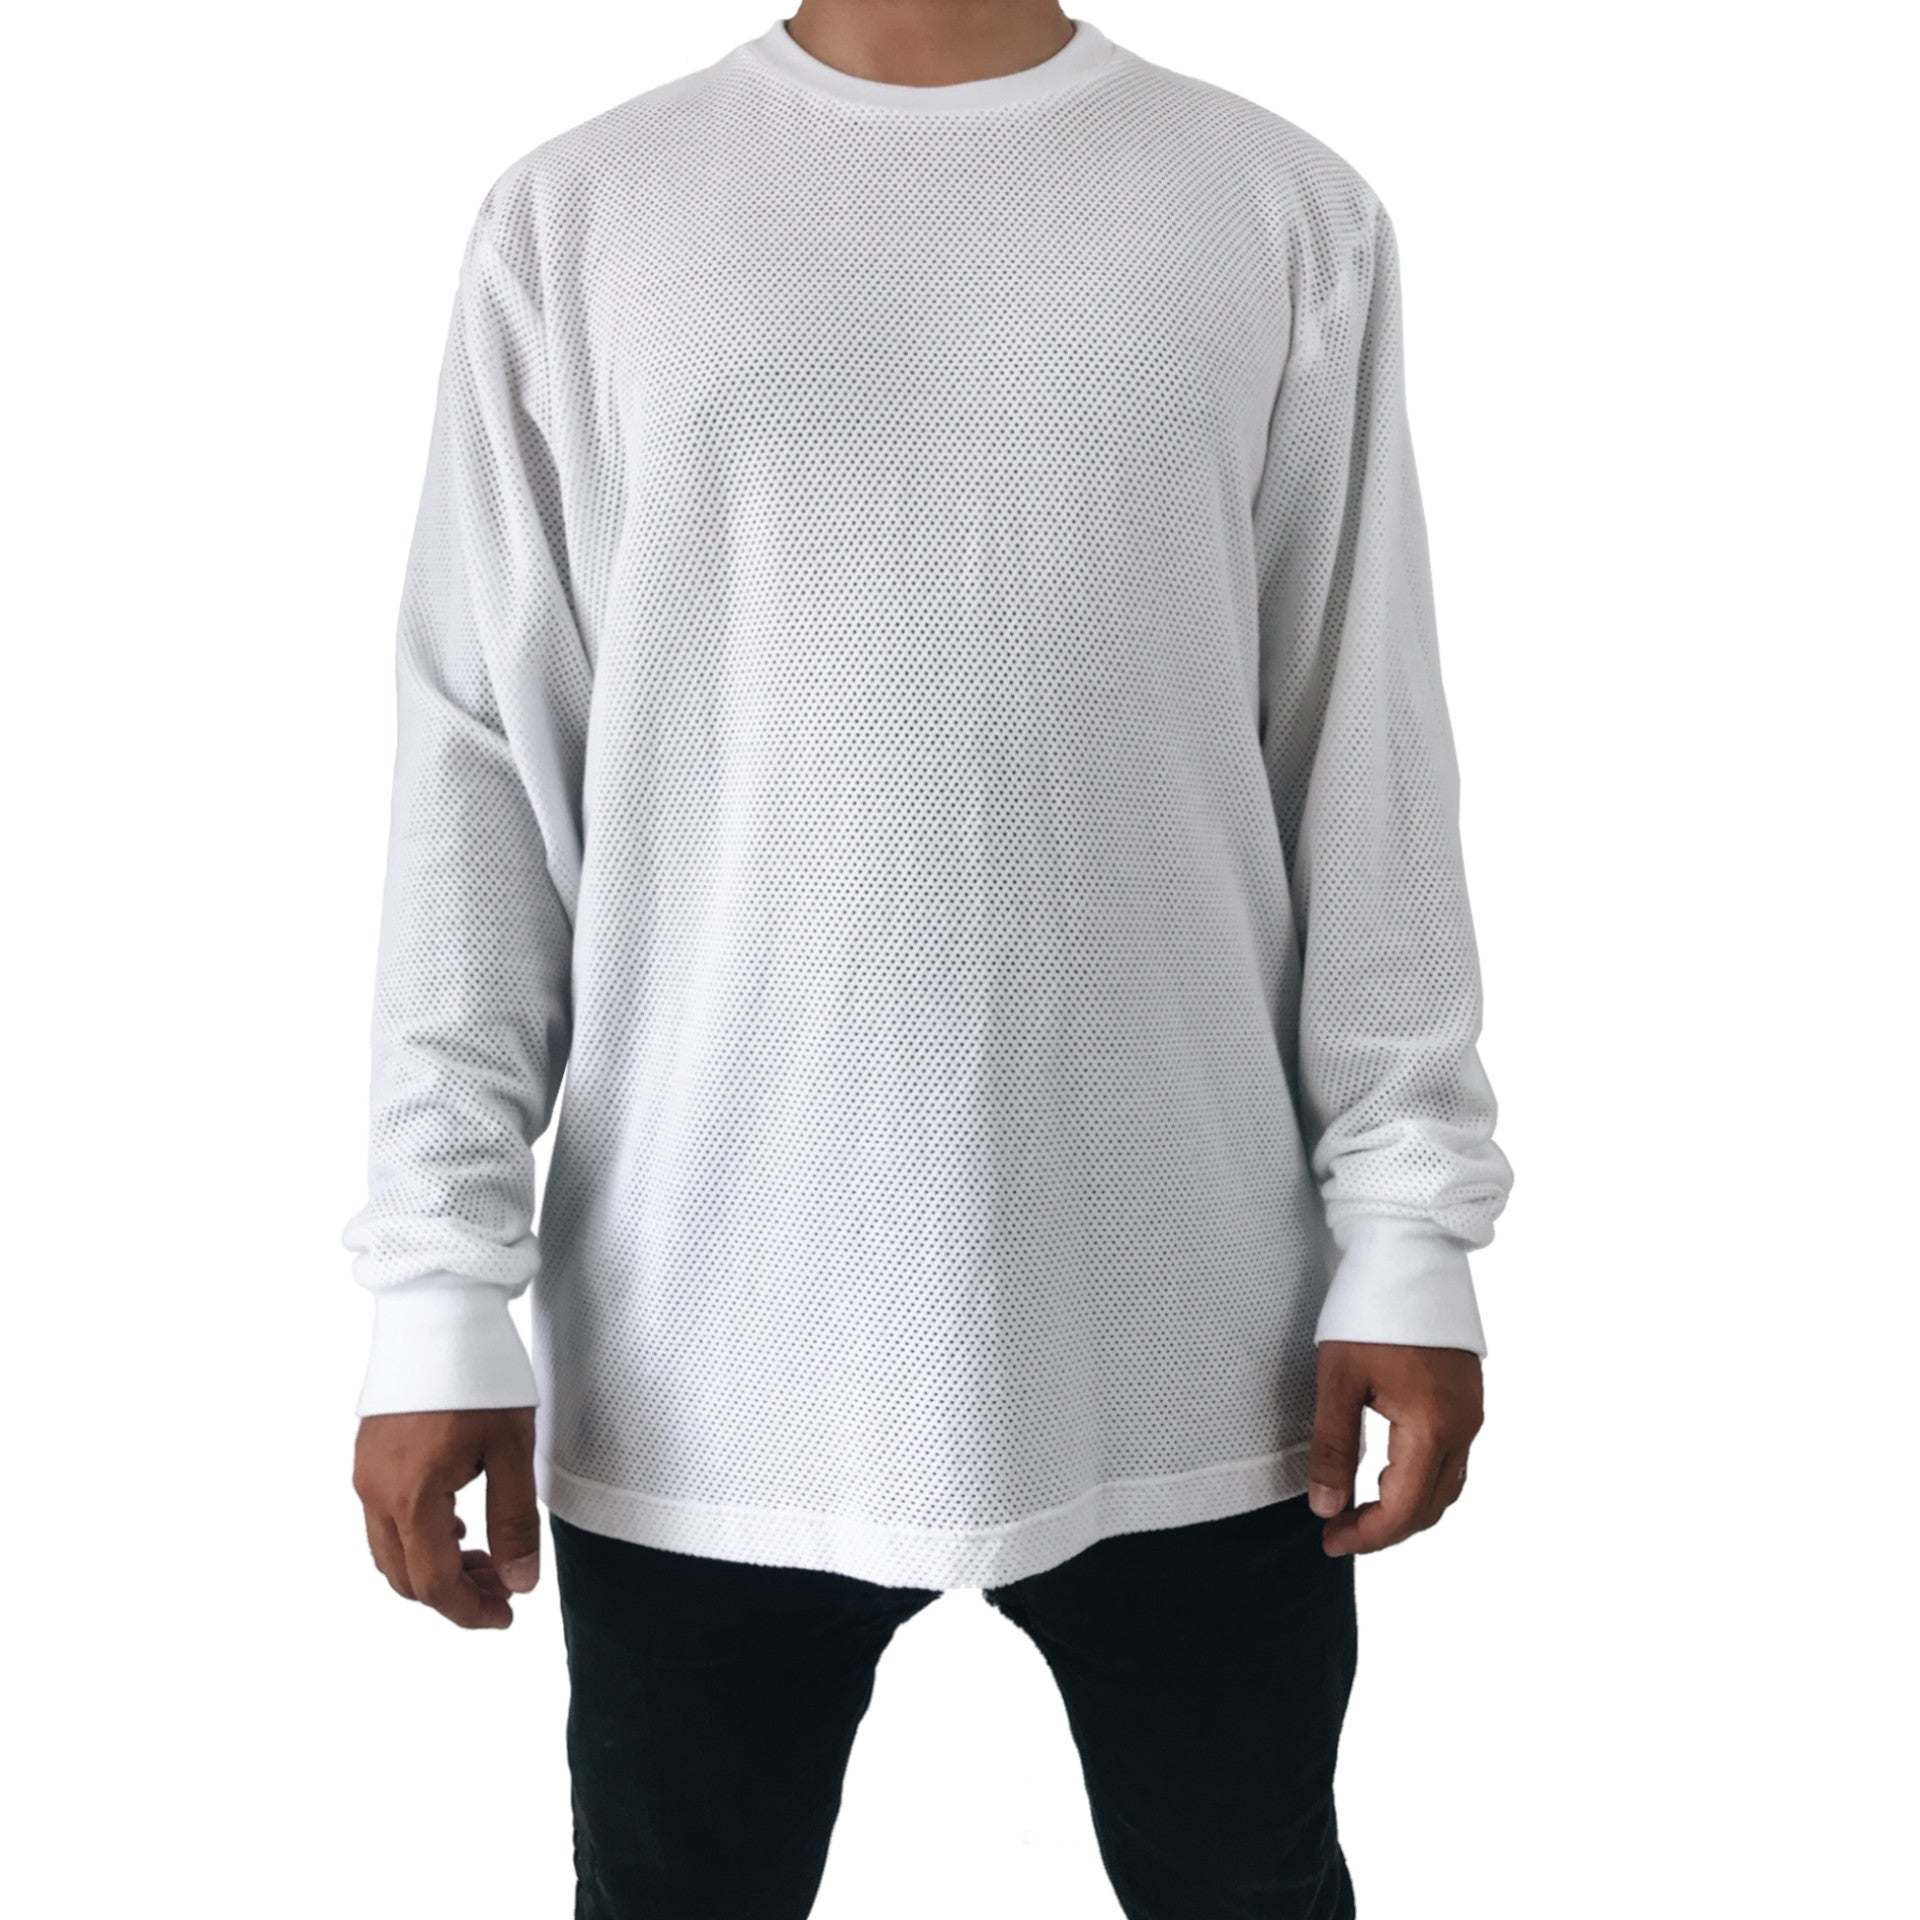 white cotton mesh longsleeve tee shirt